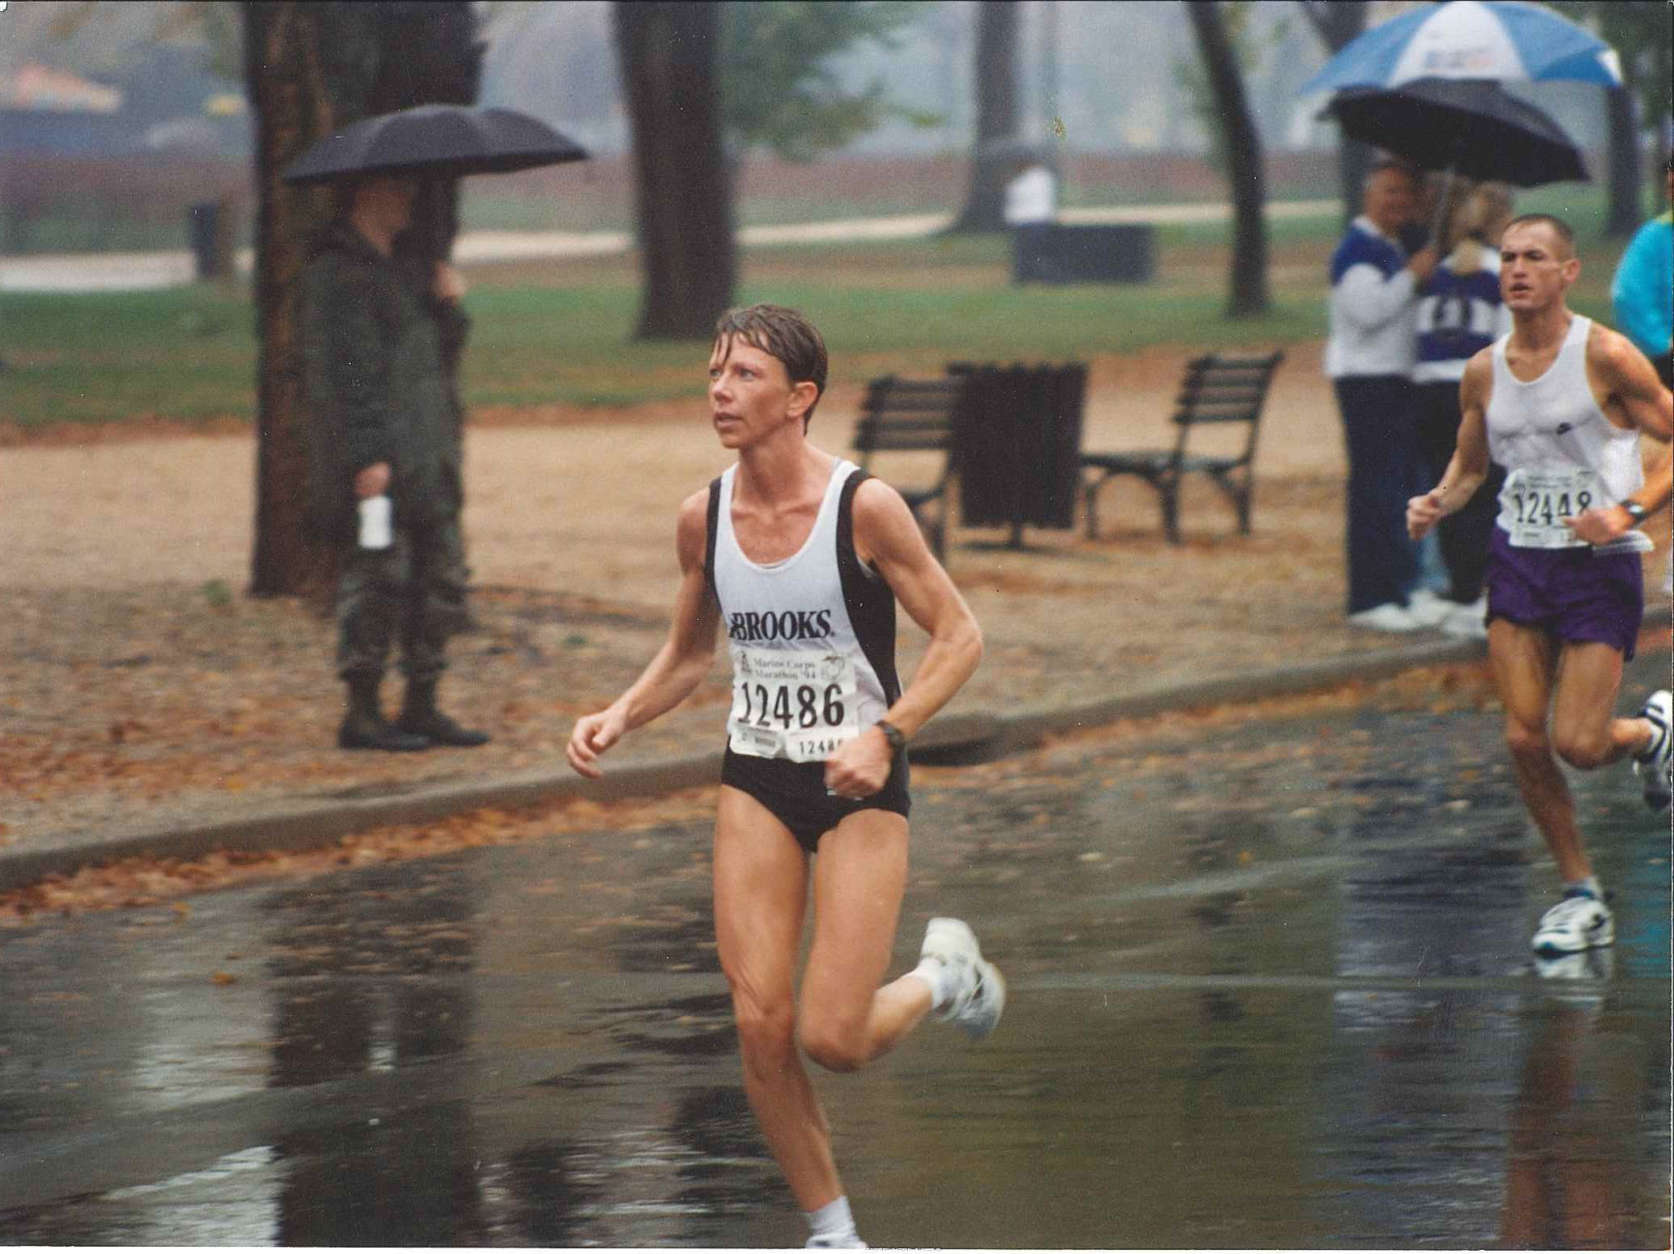 Donna Moore runs in the rain in 1997. The Kensington, Maryland, woman went on to win the race that year. (Courtesy Marine Corps Marathon)